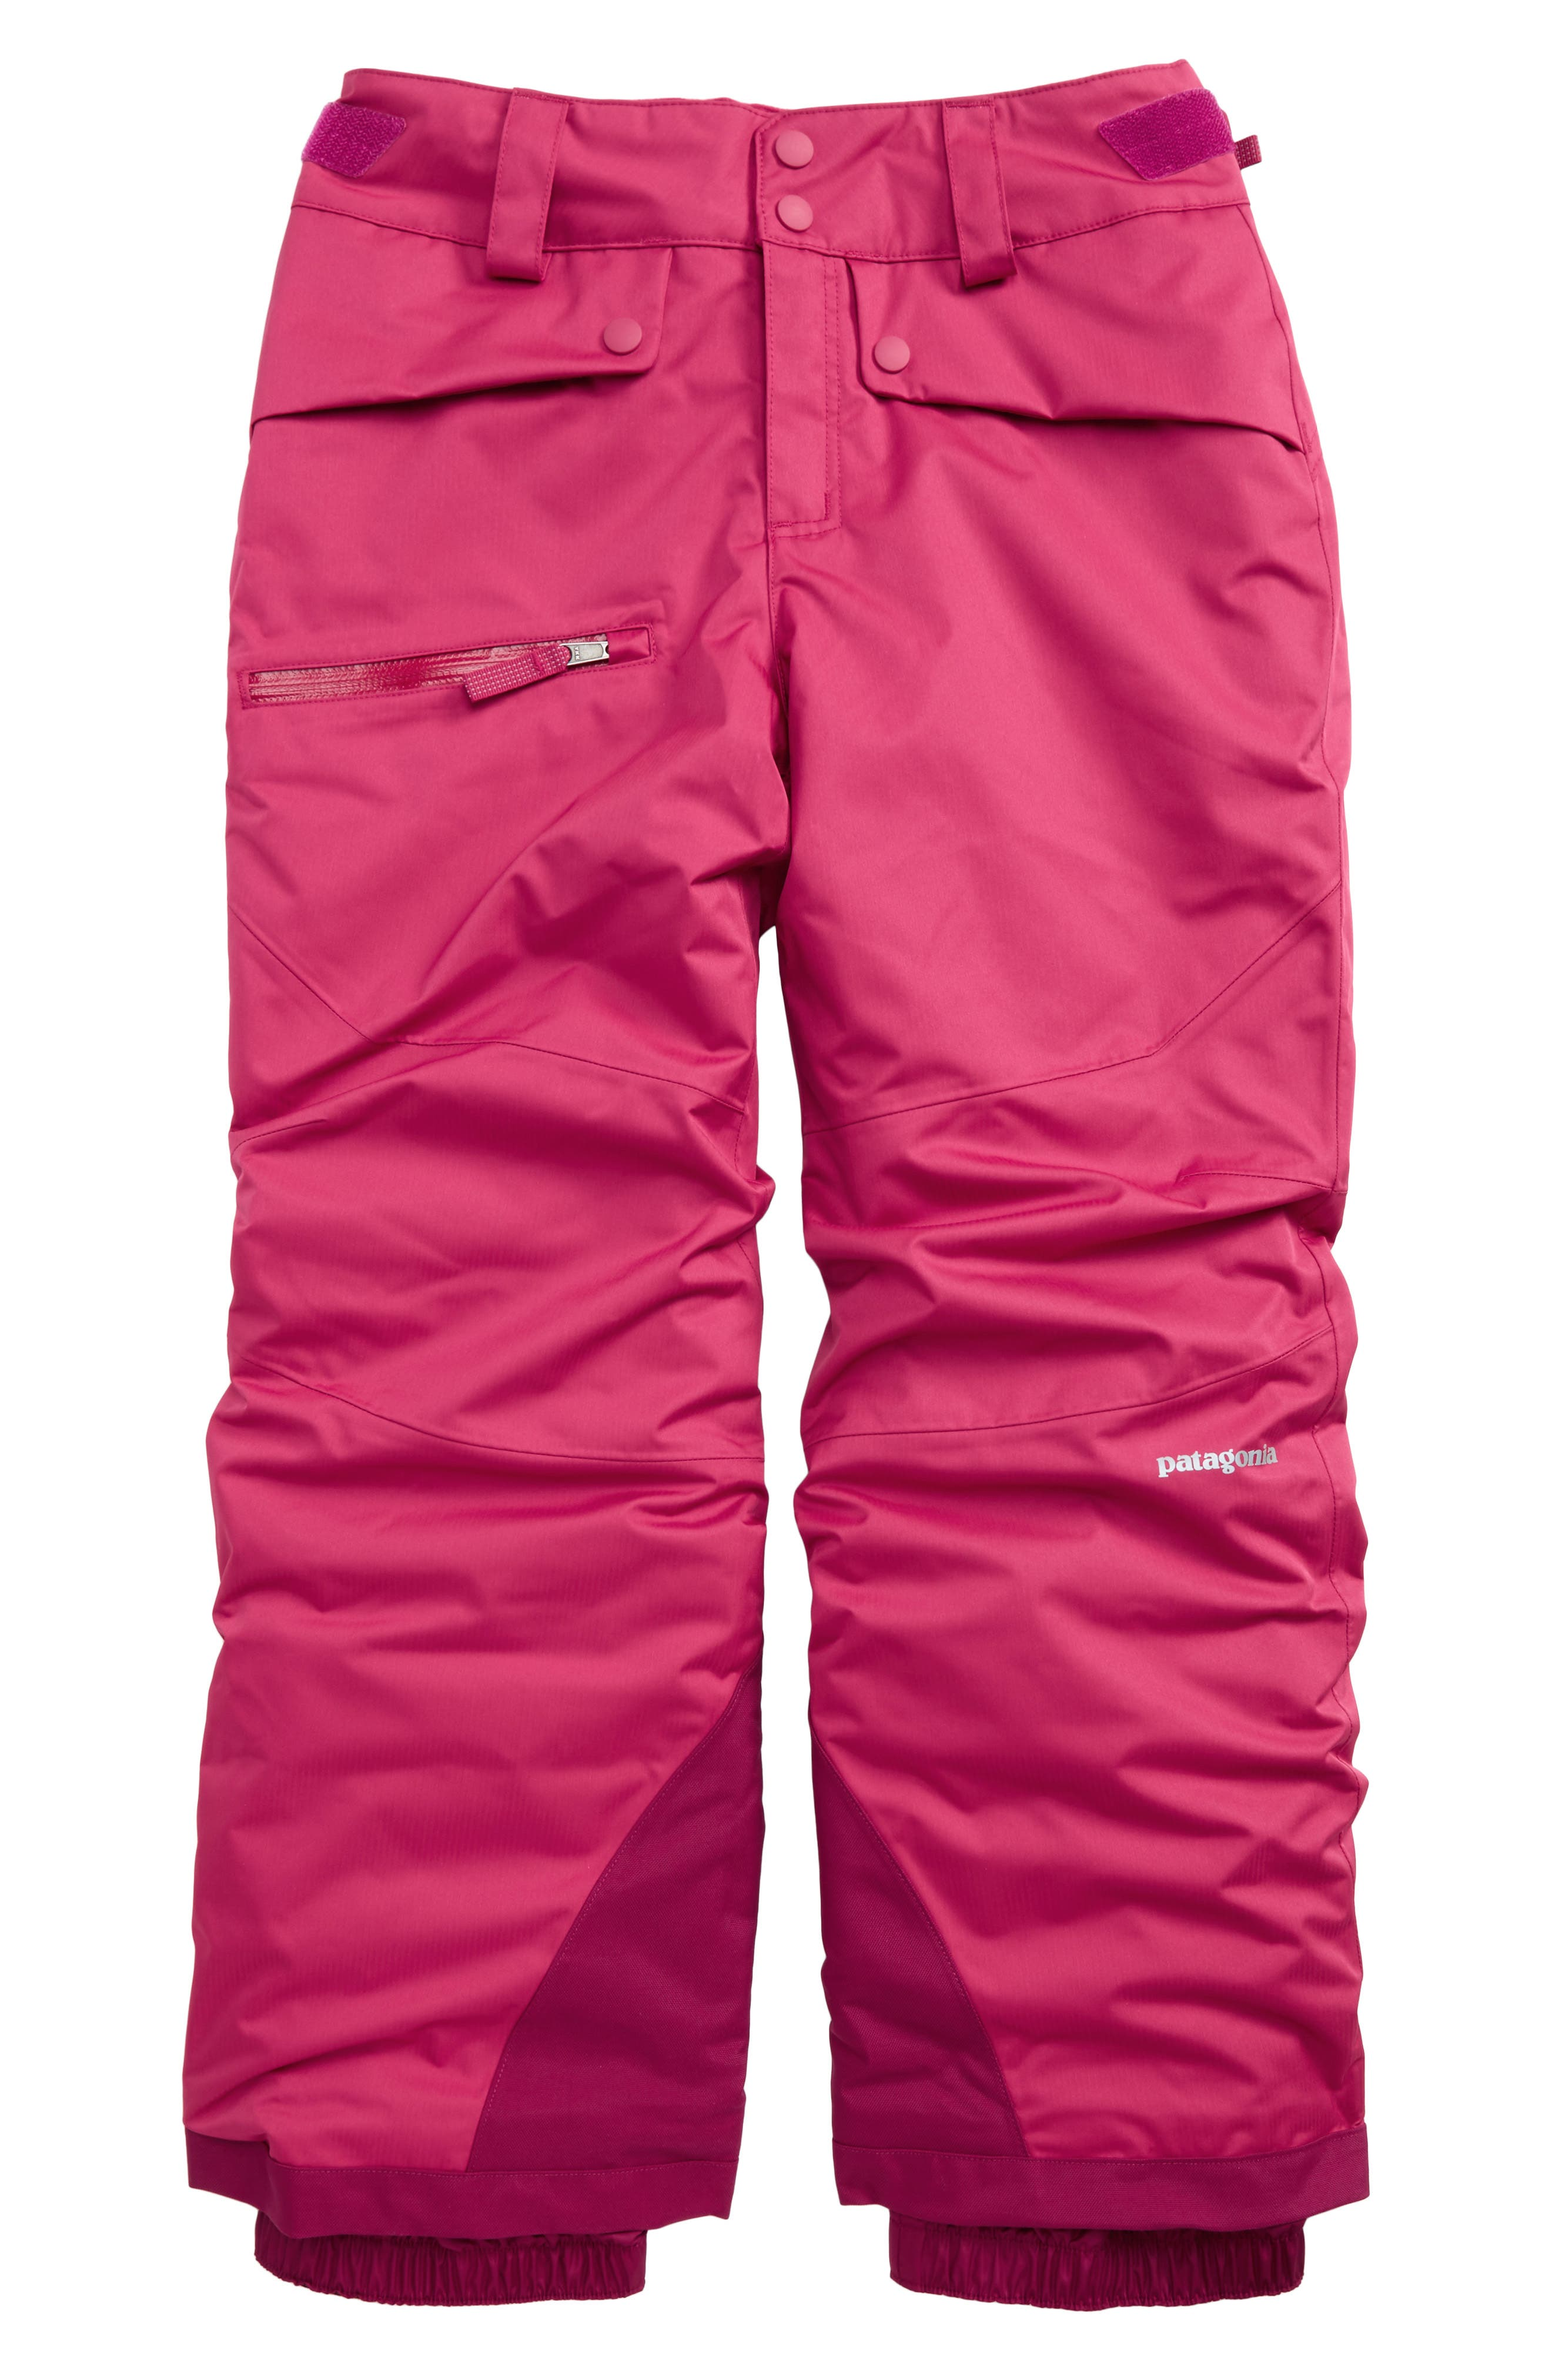 Alternate Image 1 Selected - Patagonia Snowbelle Insulated Snow Pants (Little Girls & Big Girls)